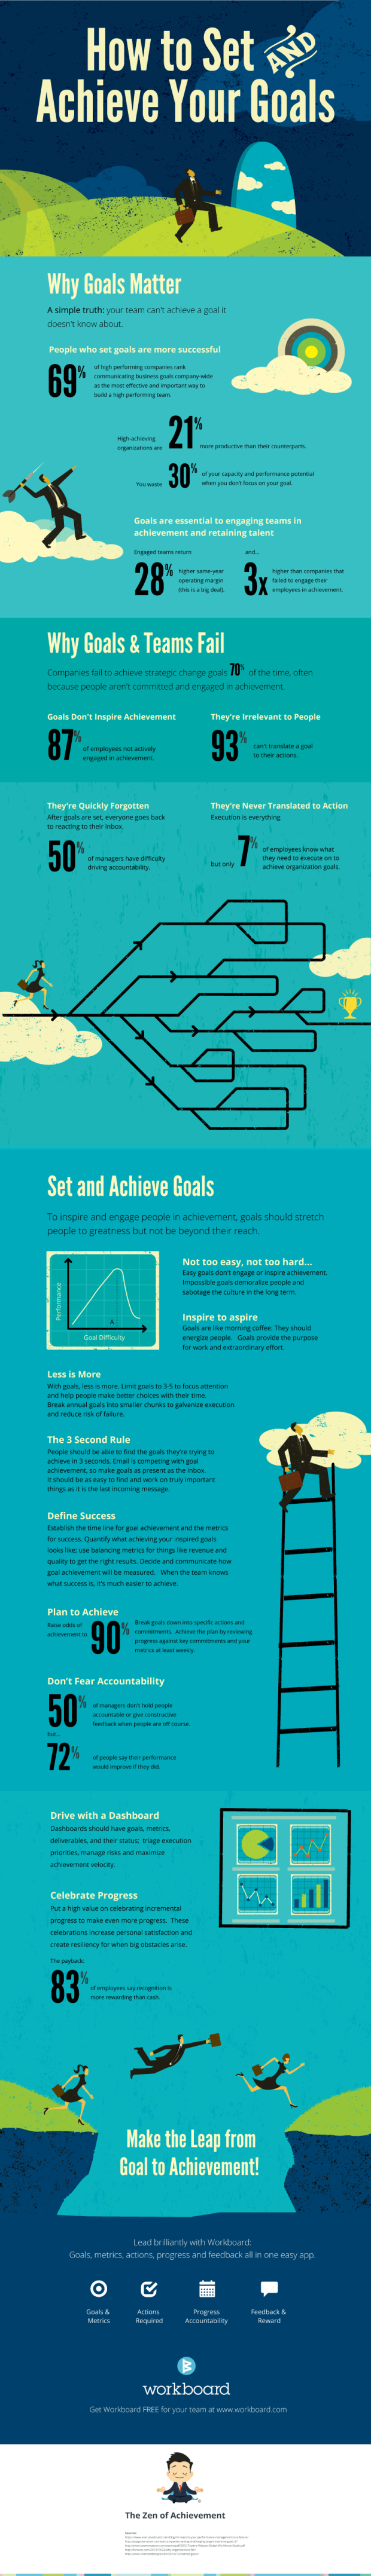 how-to-set-achieve-goals